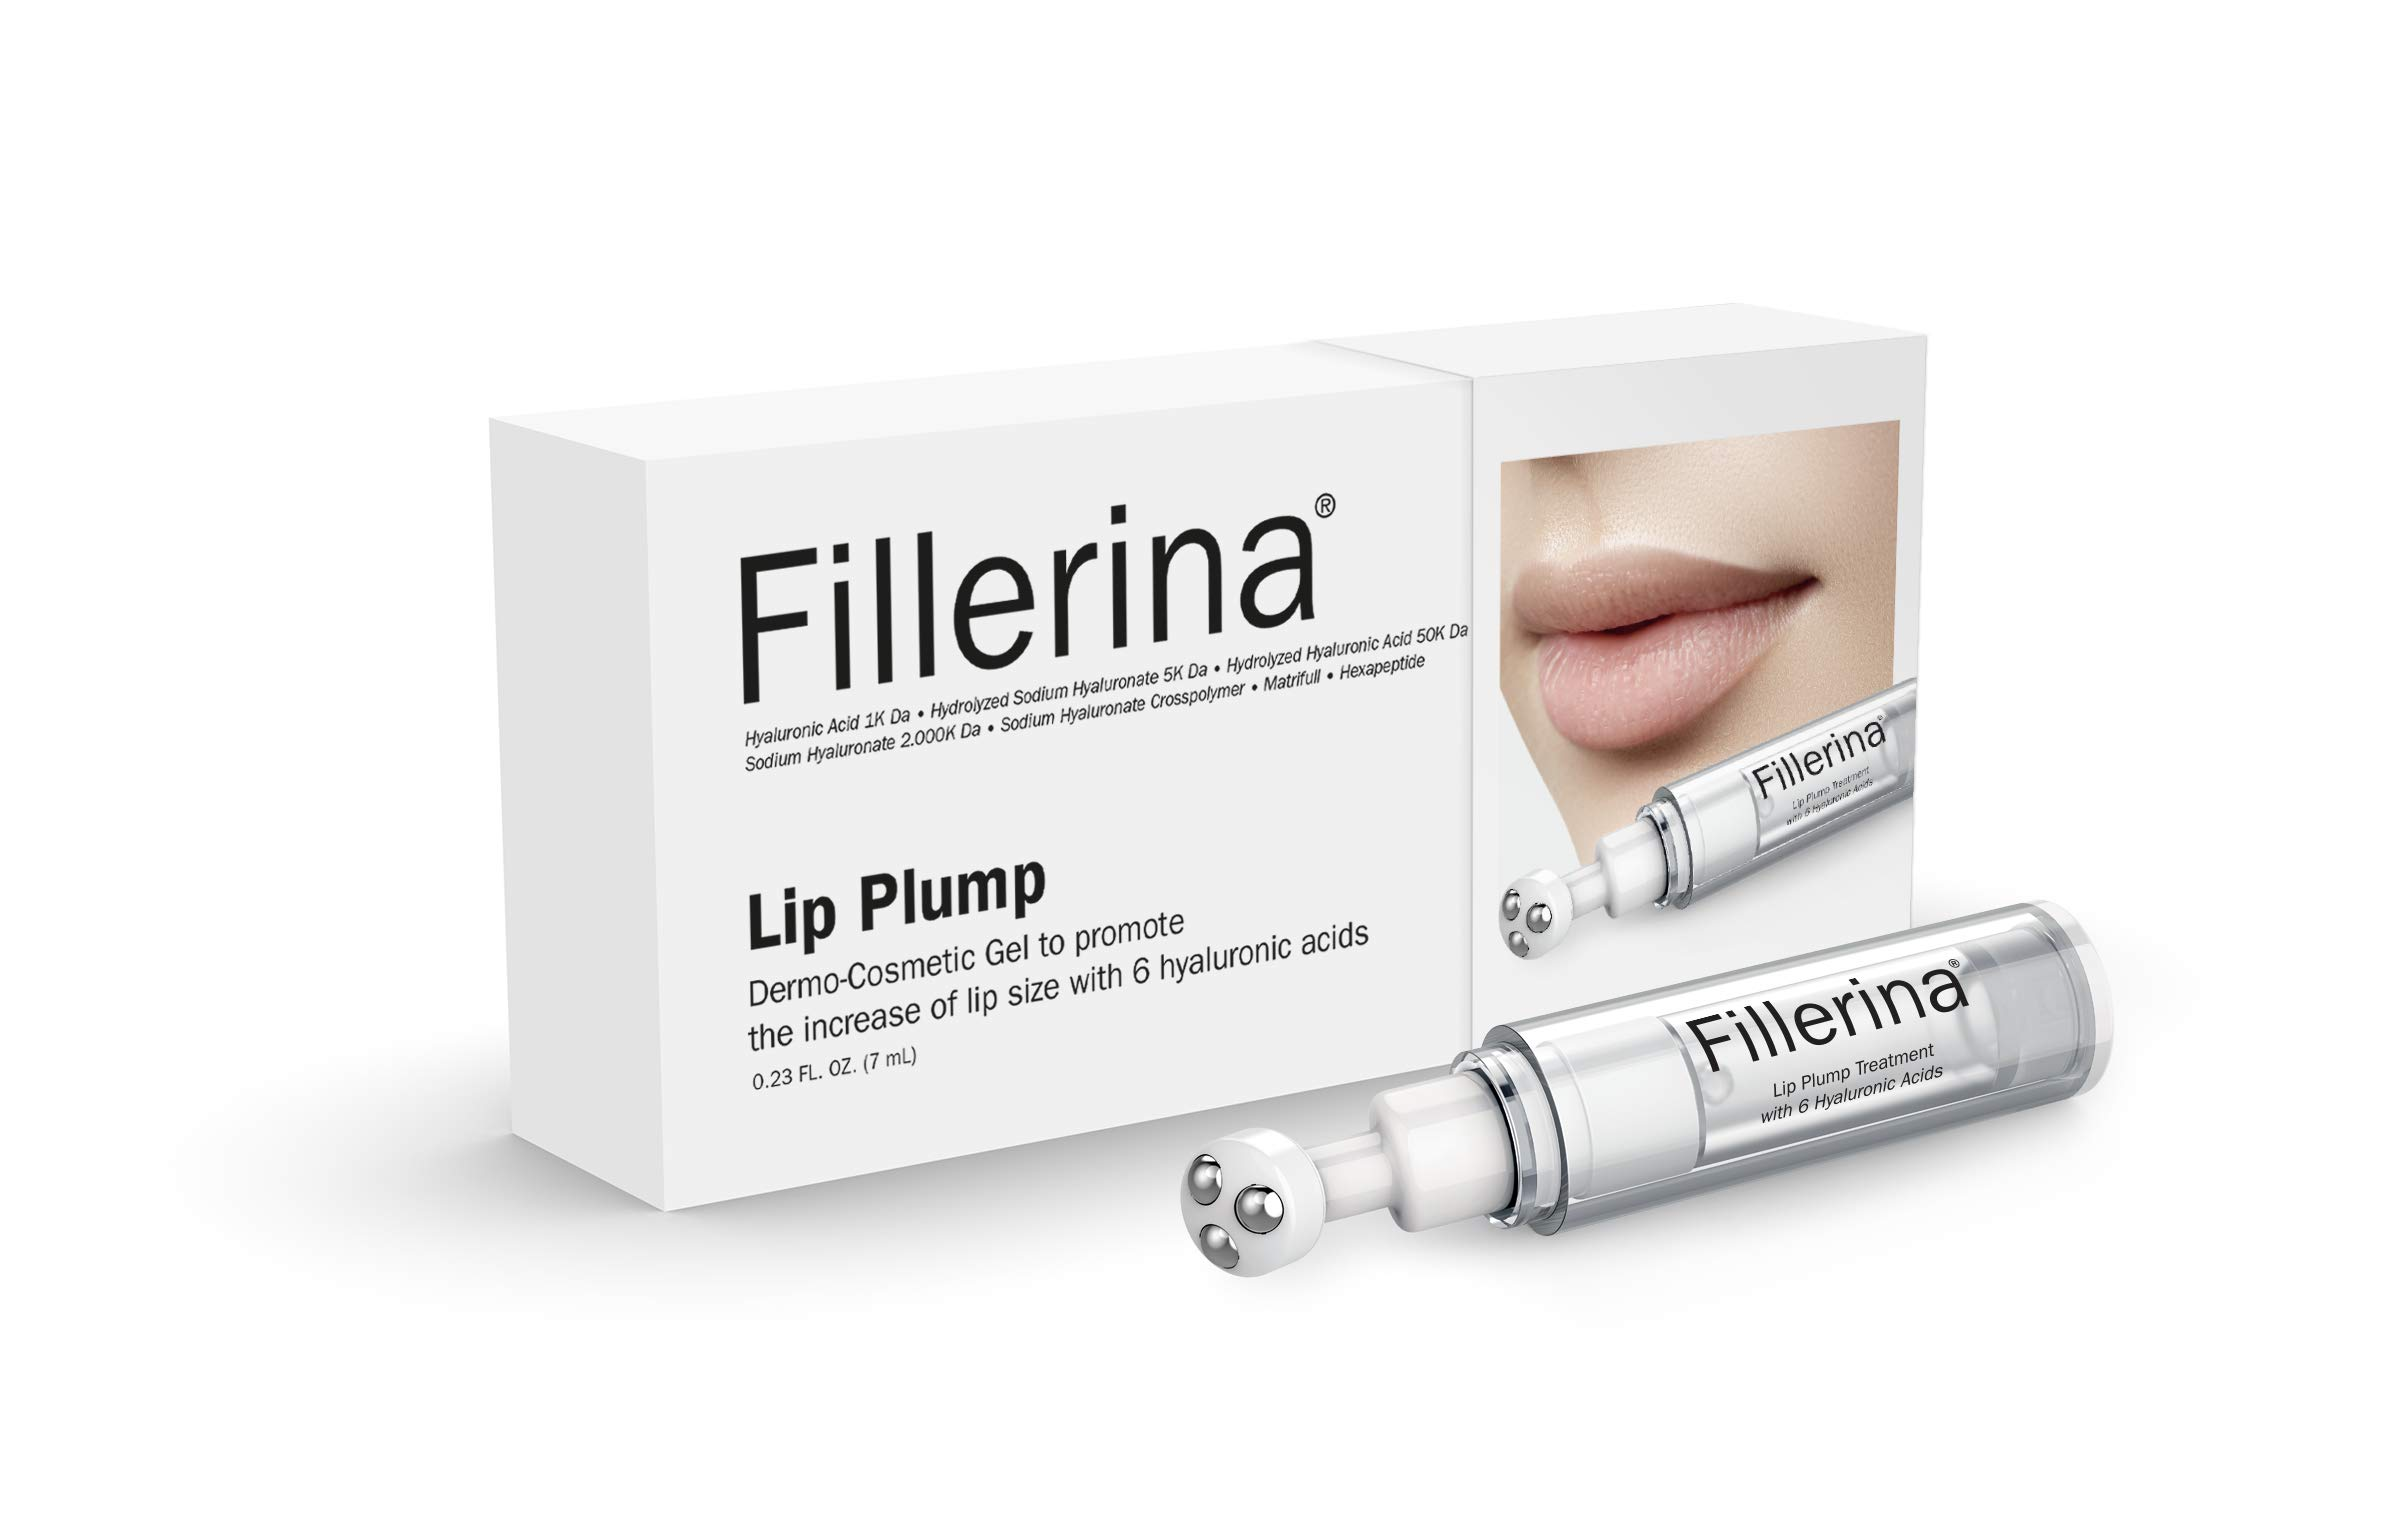 New Fillerina Lip Plump Grade 1